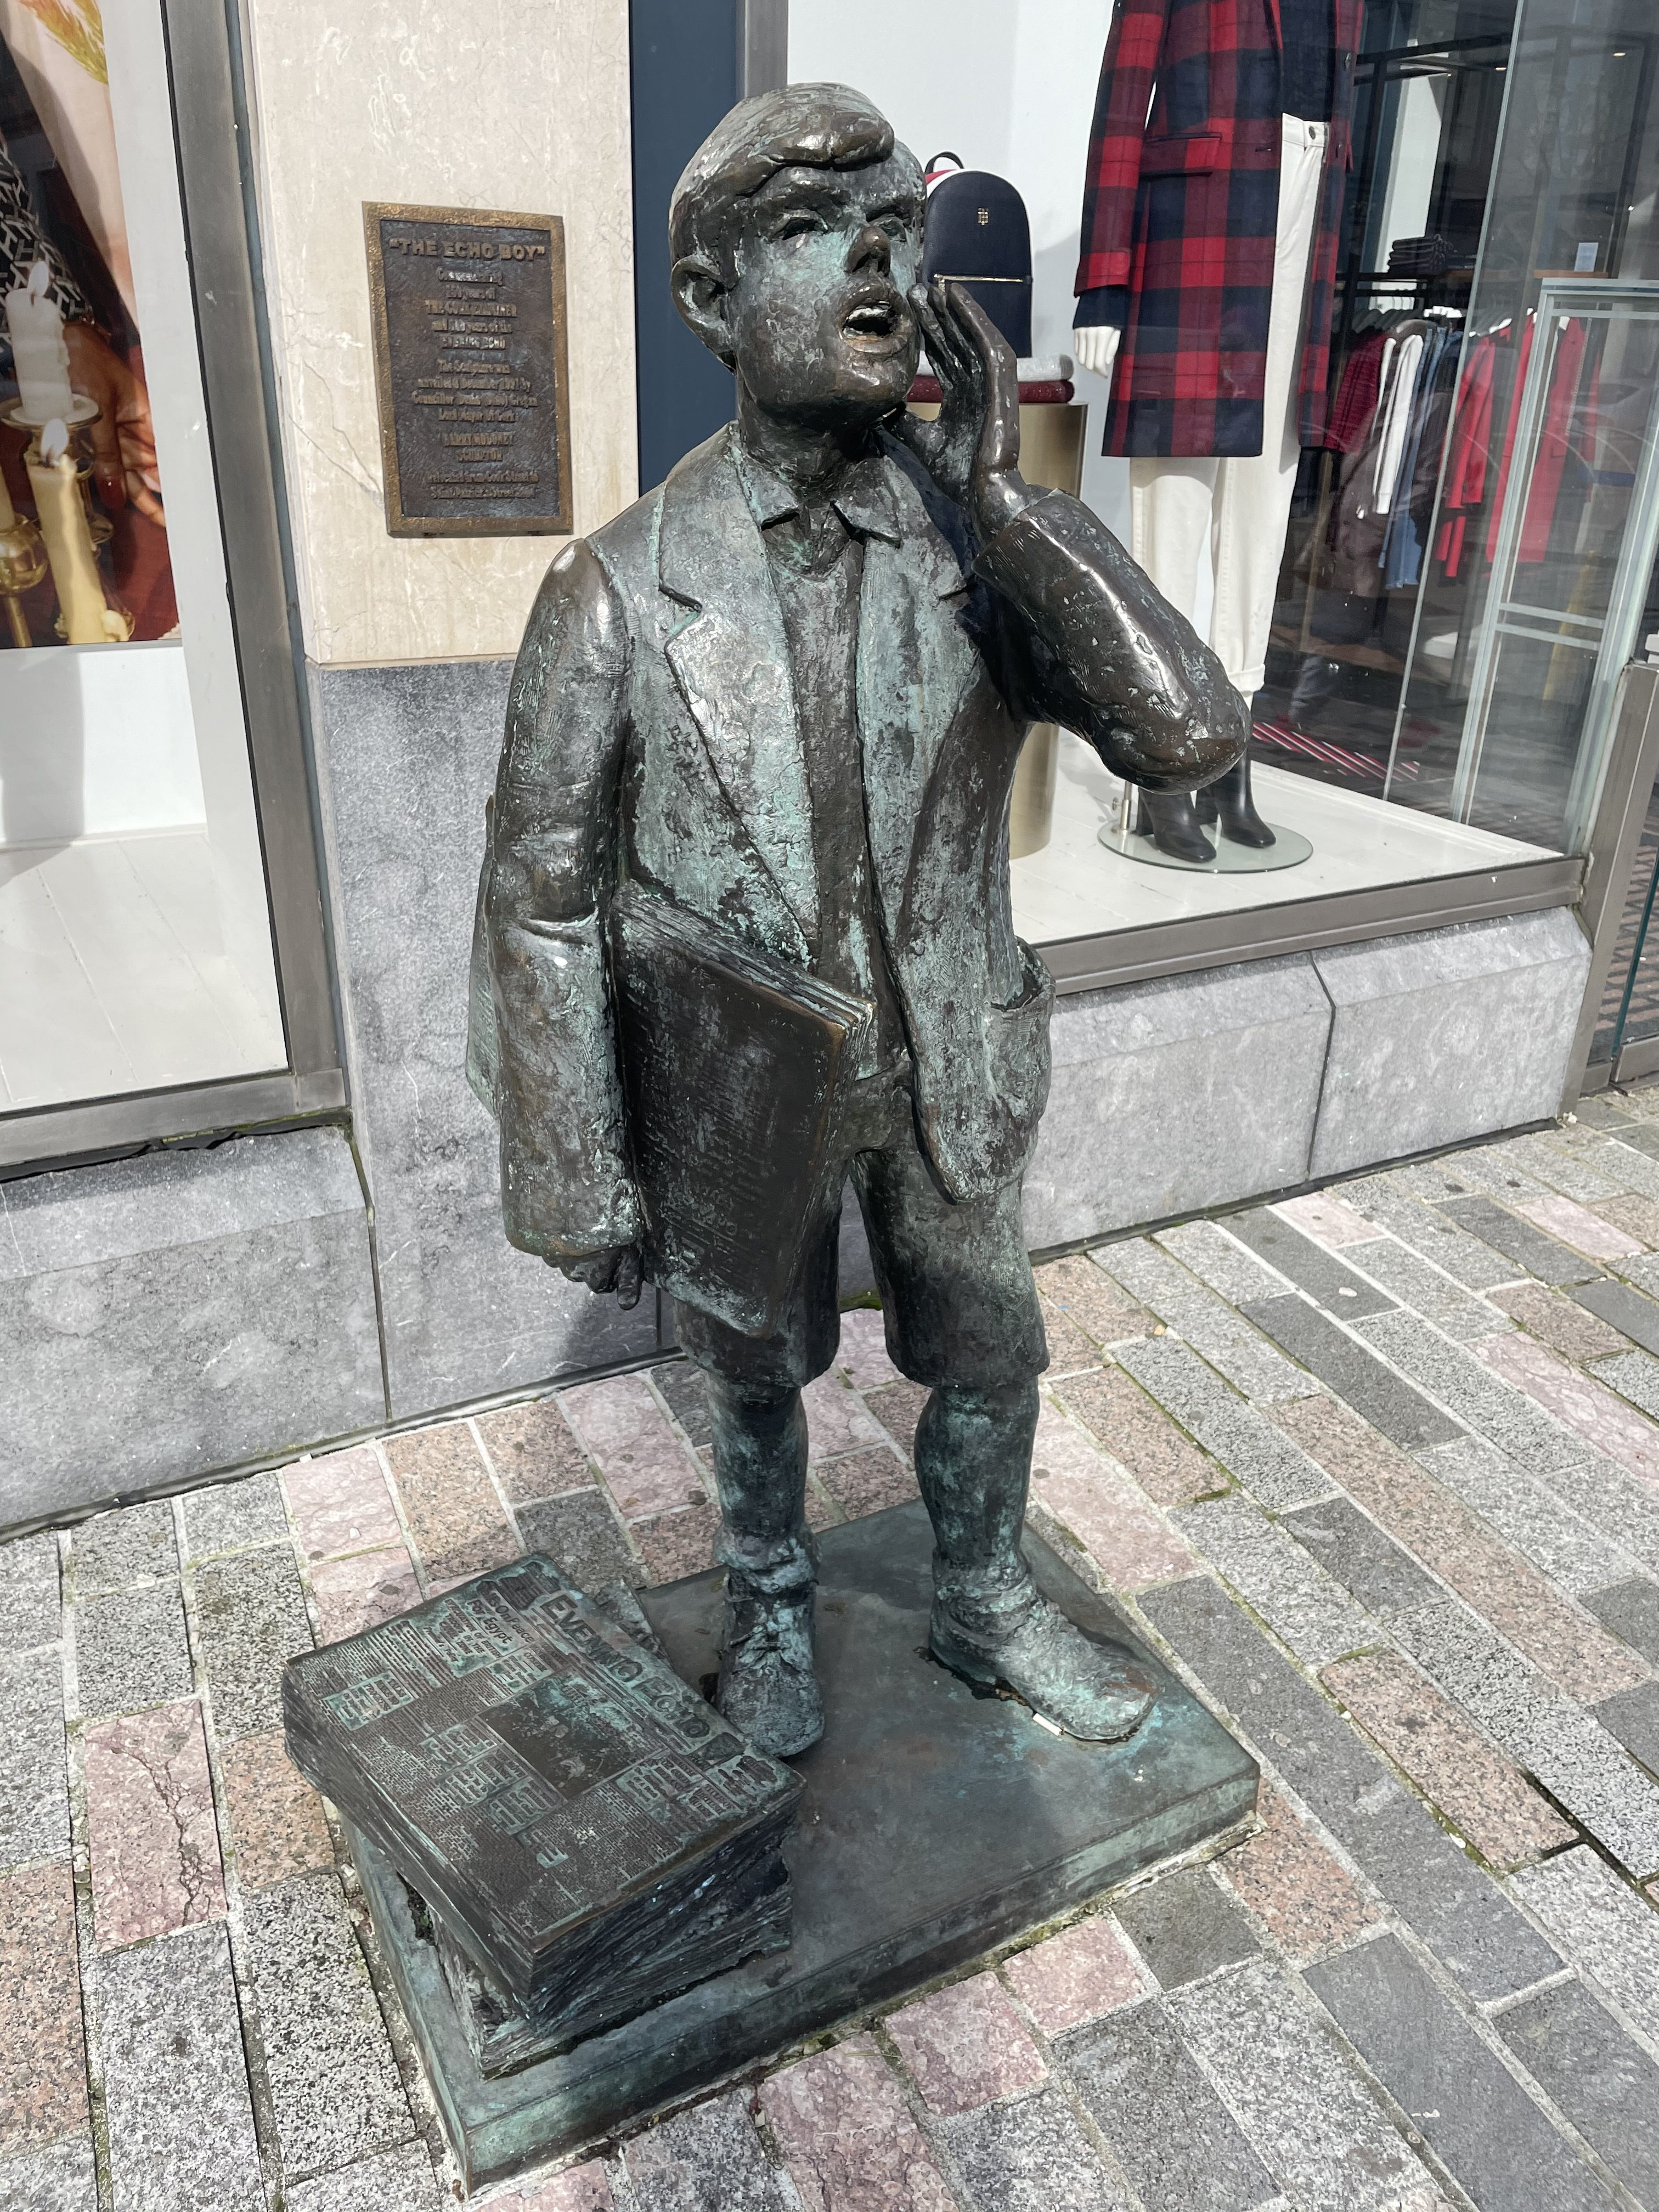 Originally, The Echo Boy statue was unveiled on Cook Street on 8 December 1991, but in 2004 was relocated to St Patrick's Street. It was sculpted by Barry Moloney (picture: Kieran McCarthy)